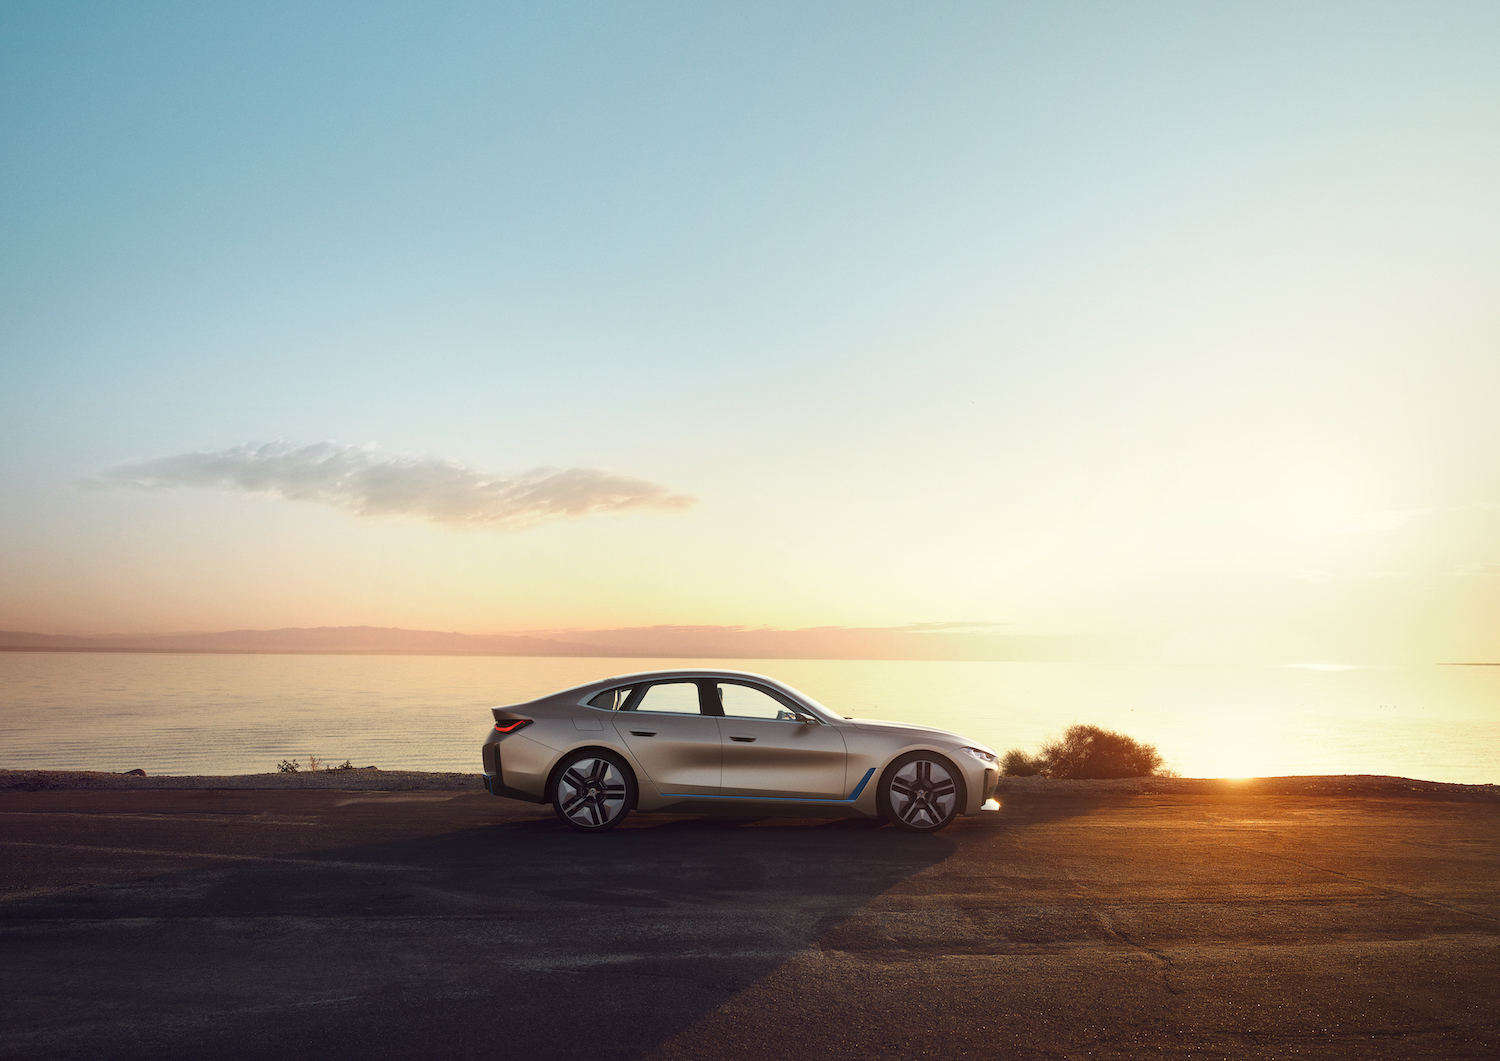 2021 BMW Concept i4 side-view